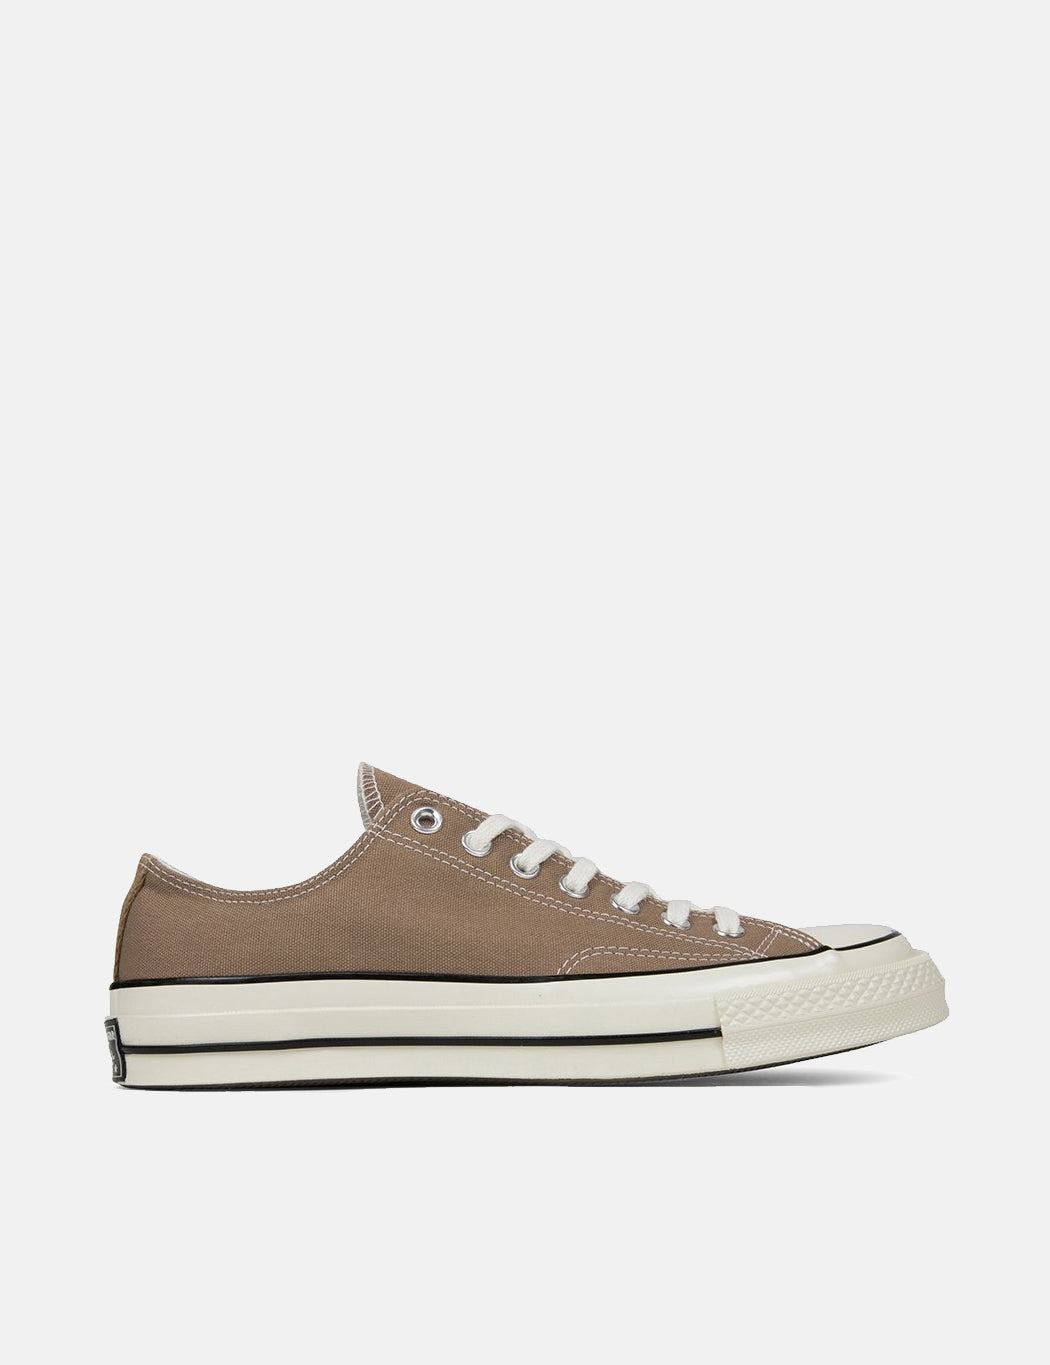 Converse 70's Chuck Low 161504C (Canvas) - Teak Brown/Black/Egret